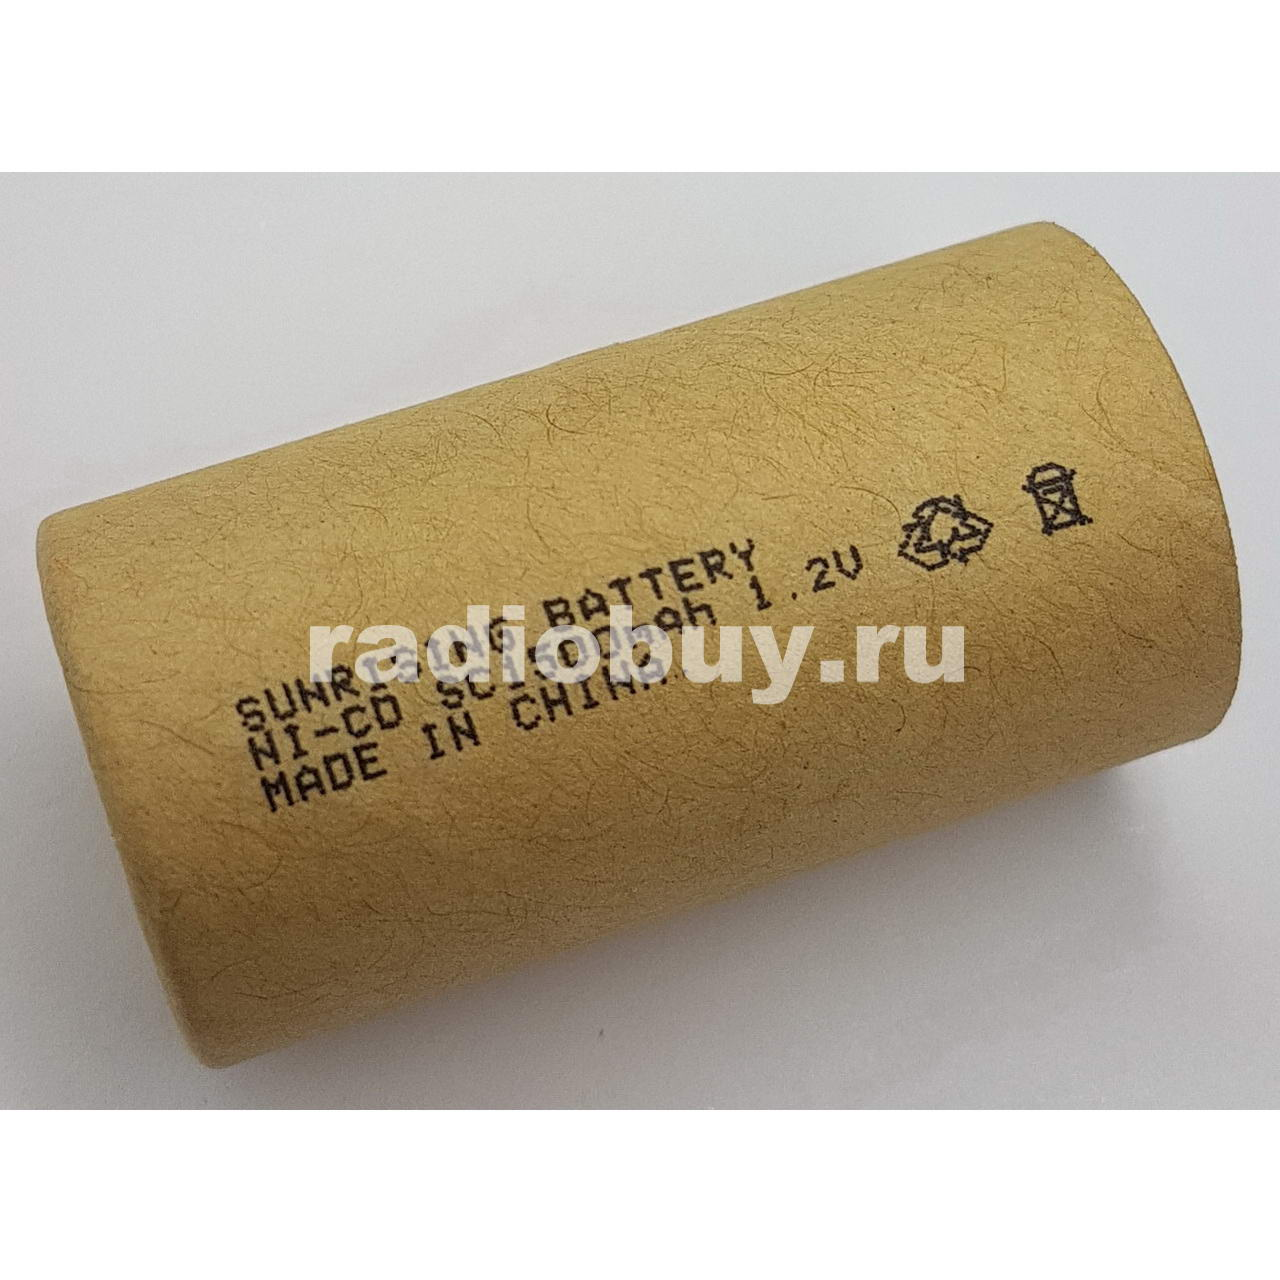 Аккумулятор Sunrising Ni-Cd SC, 1500mAh, (10C)